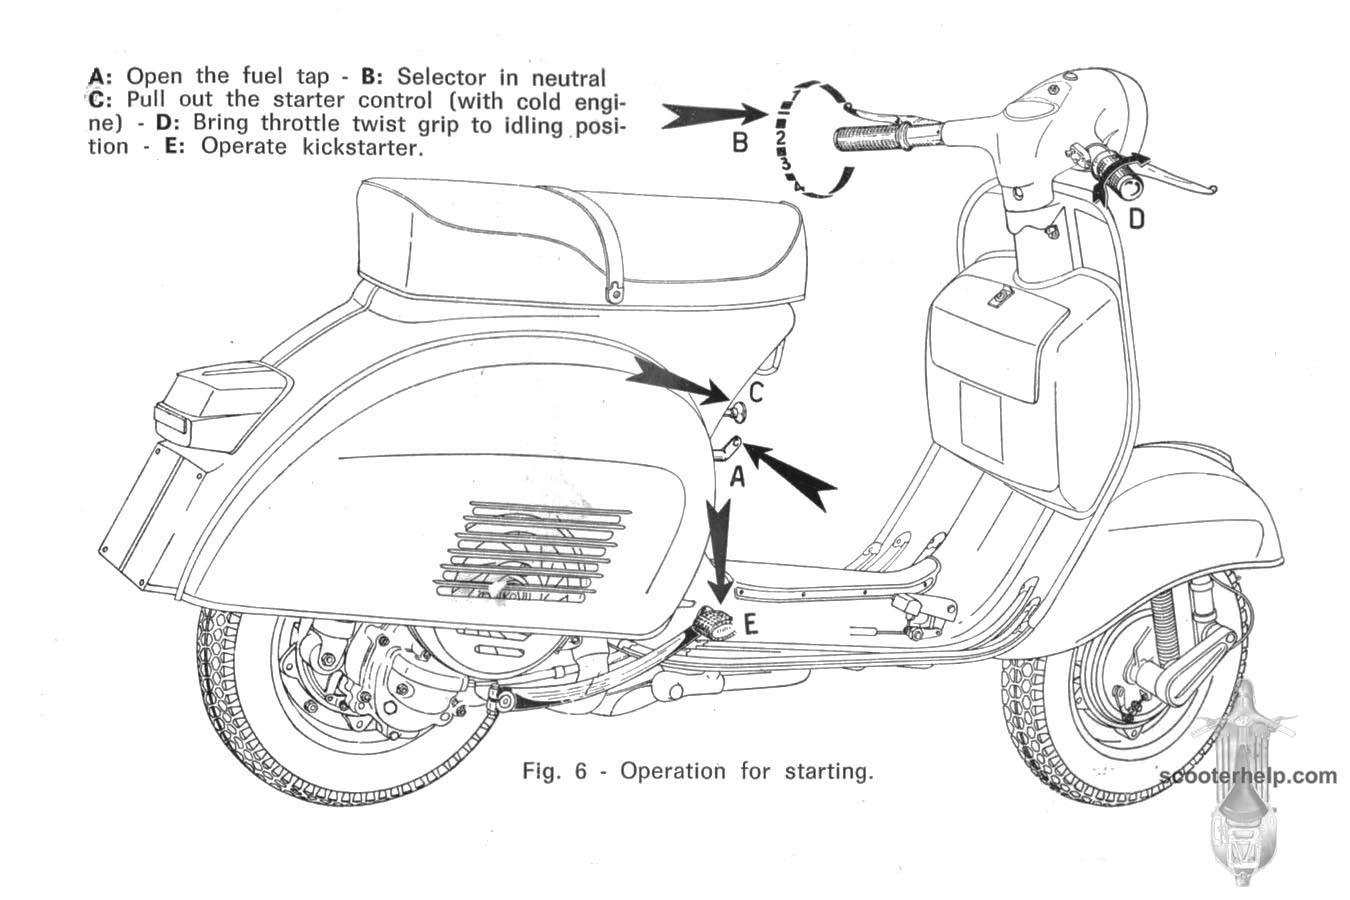 Vespa Rally 200 Owner's Manual